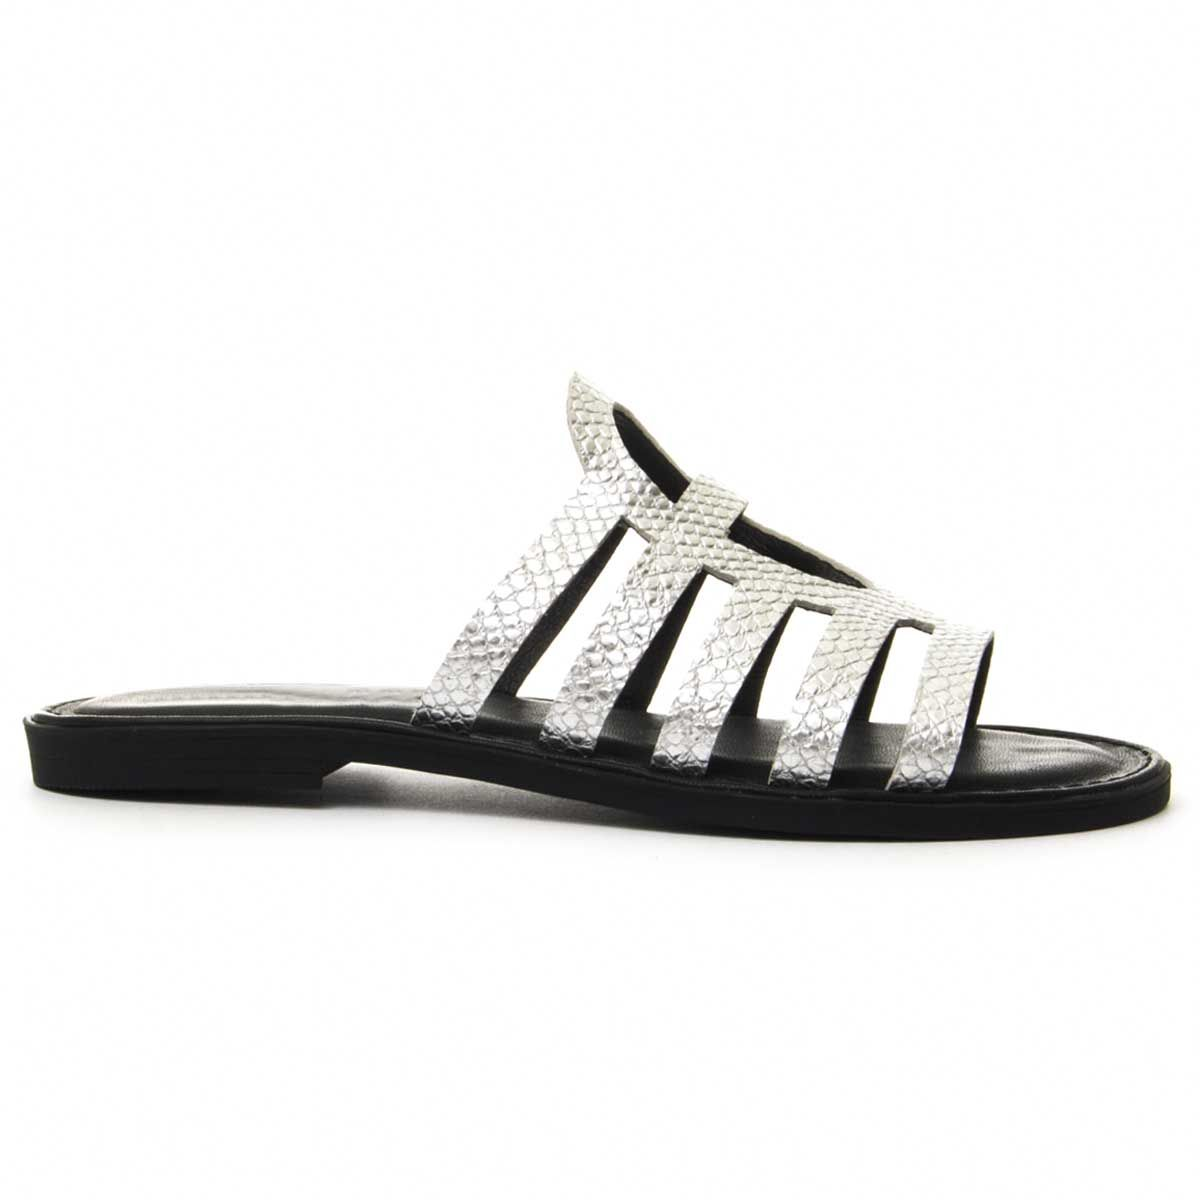 Leindia Strappy Flat Sandal in Silver